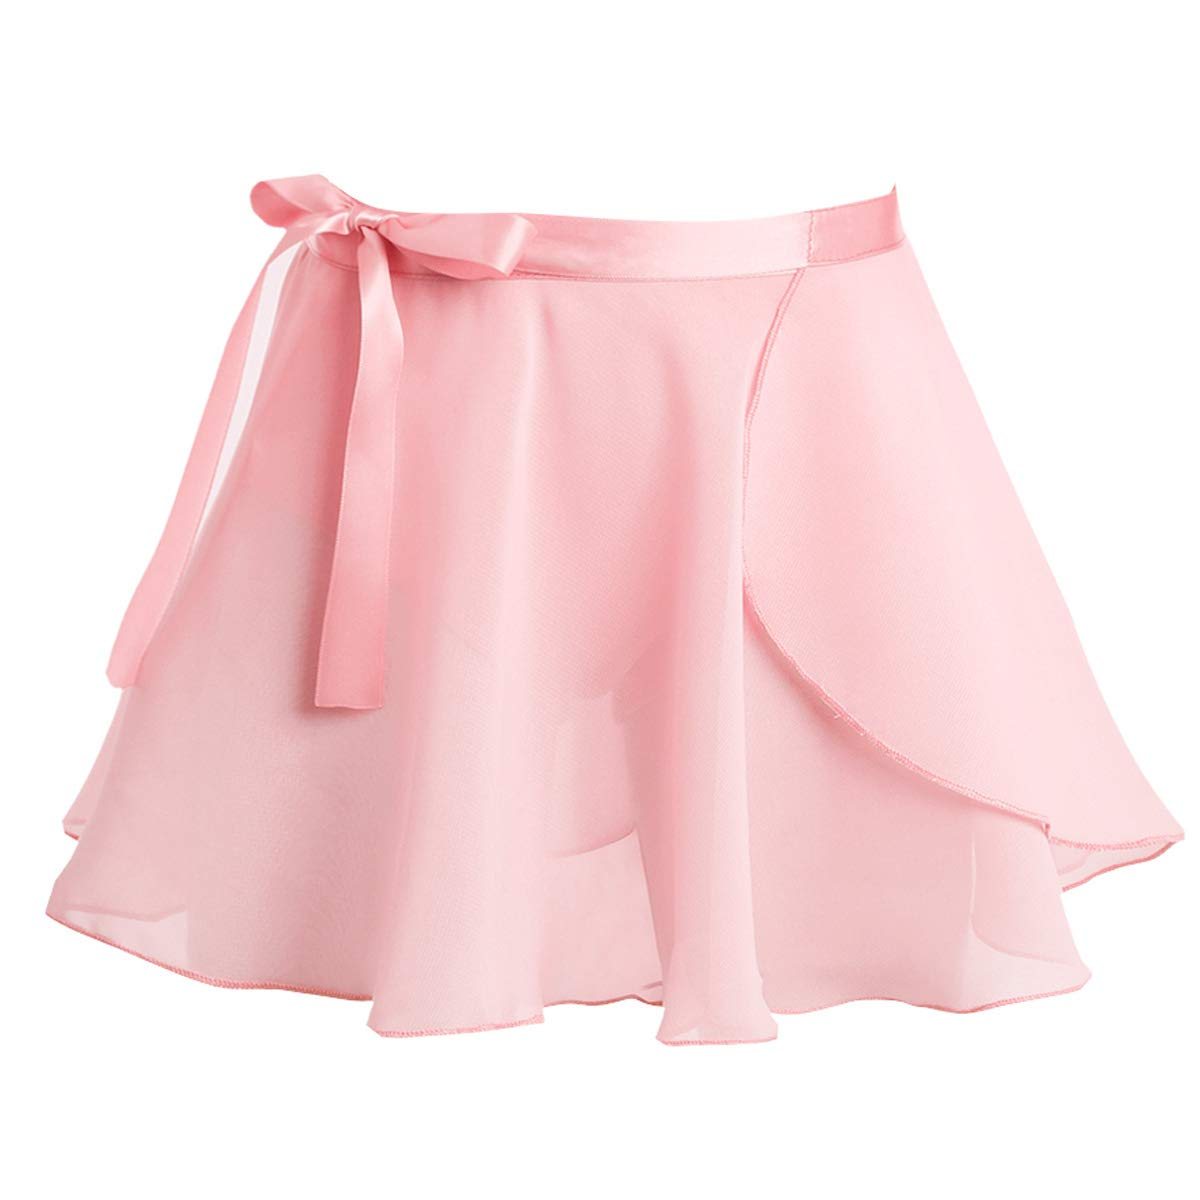 TiaoBug Girls' Ballet Dance Basic Wrap Over Scarf Chiffon Skirt with Tie Waist Collection Skate Workout Training Skorts Pink 3-4 by TiaoBug